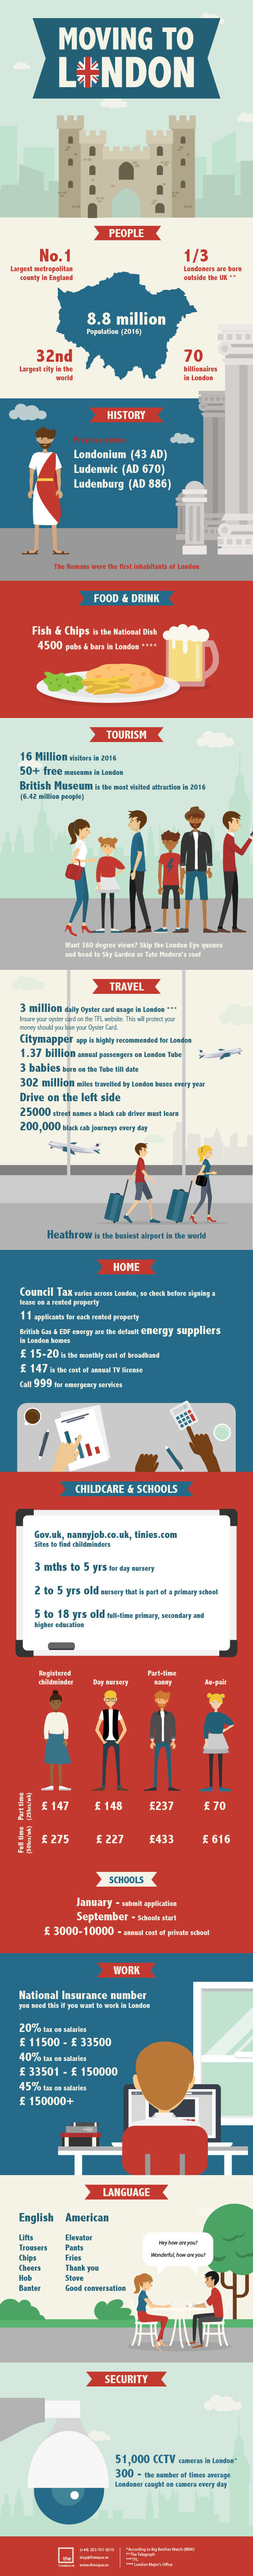 London-relocation-infographic-plaza